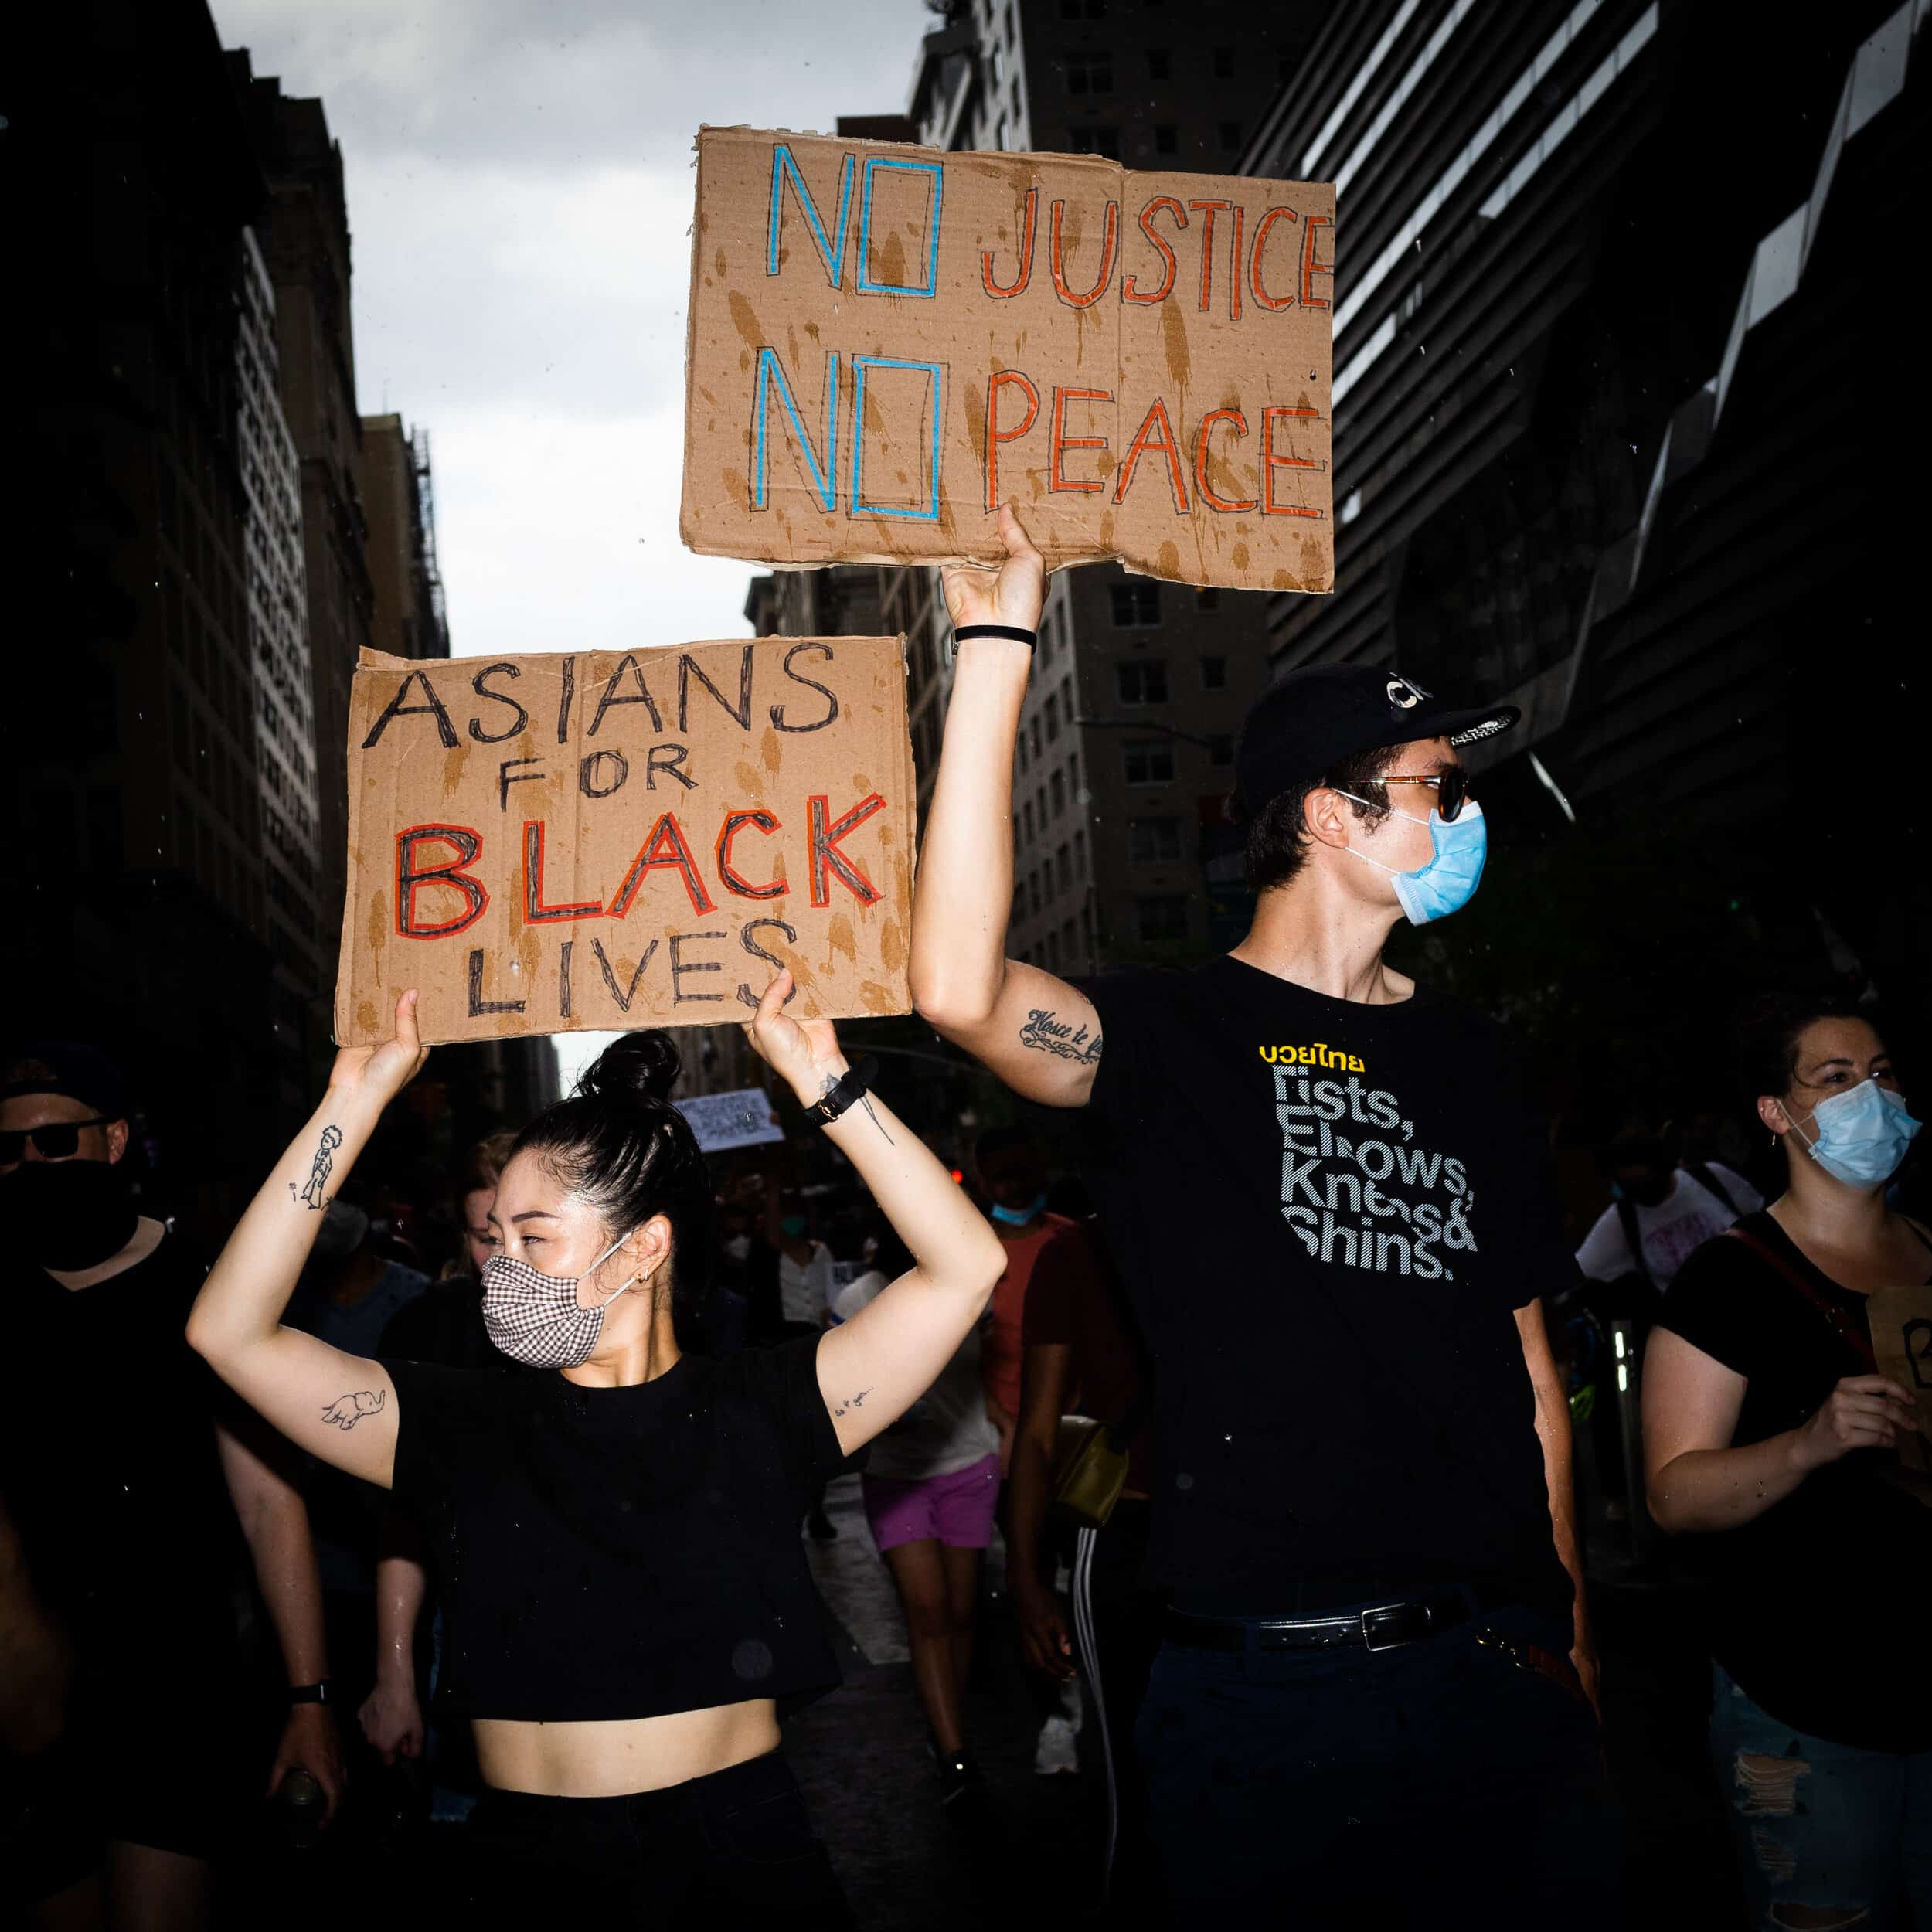 Asian Americans and the Black Community: How the Model Minority Myth Keeps us Divided